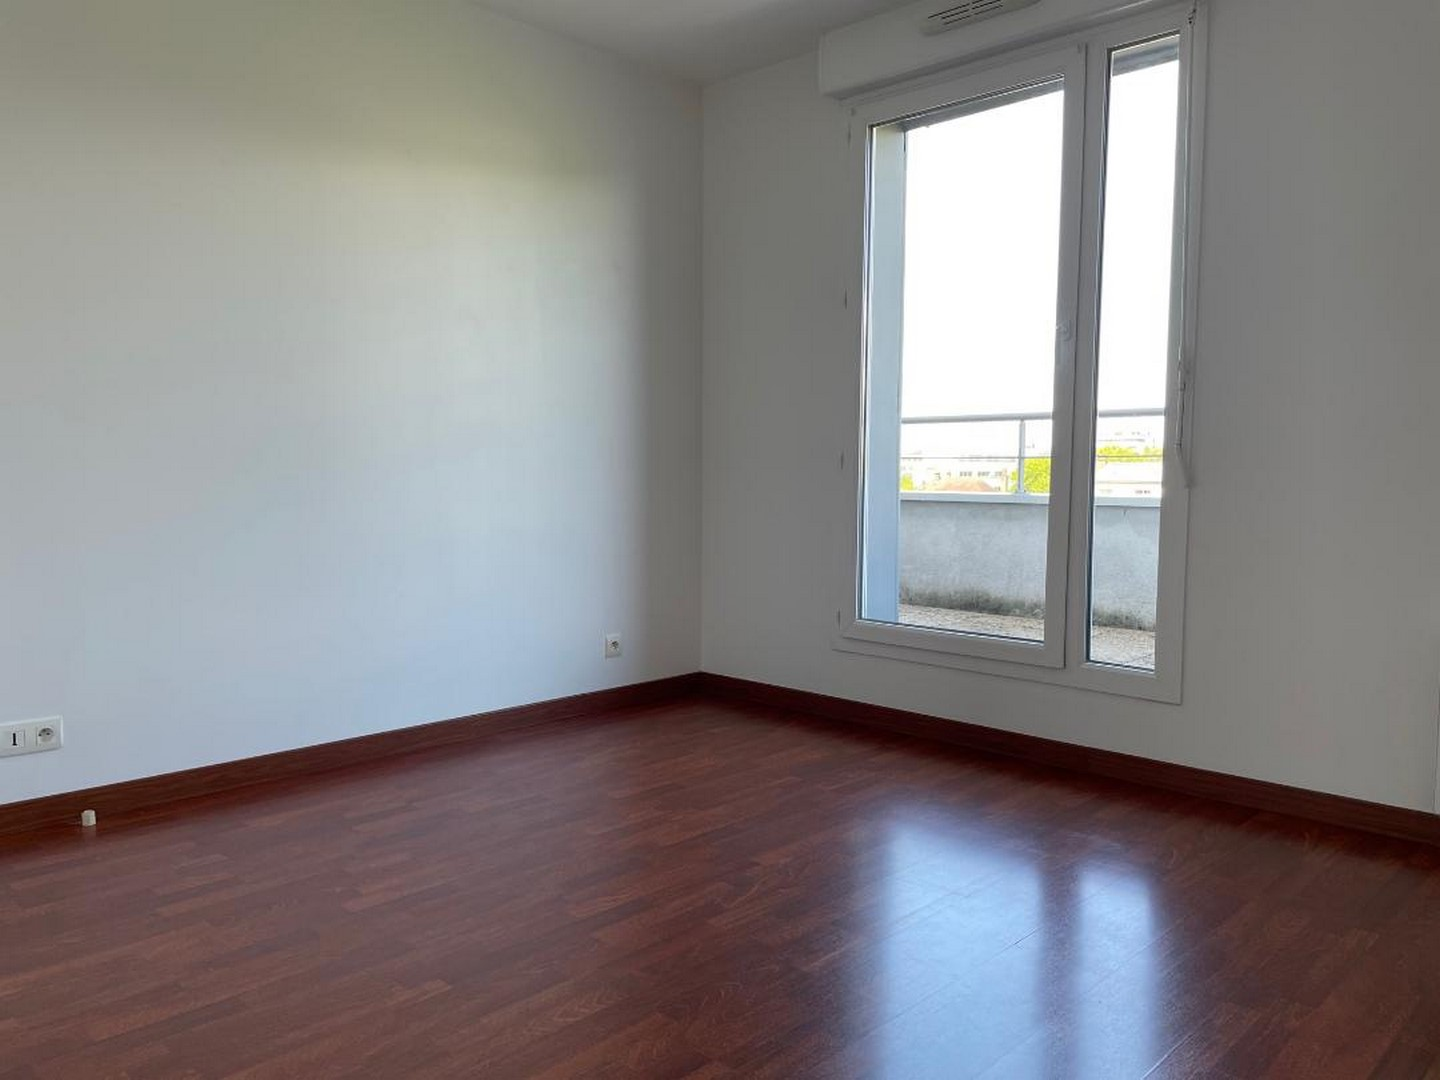 TOURS NORD CONTEMPORARY APARTMENT 119m² – TERRACE 60m² SOUTH – 2 PARKINGS and CELLAR